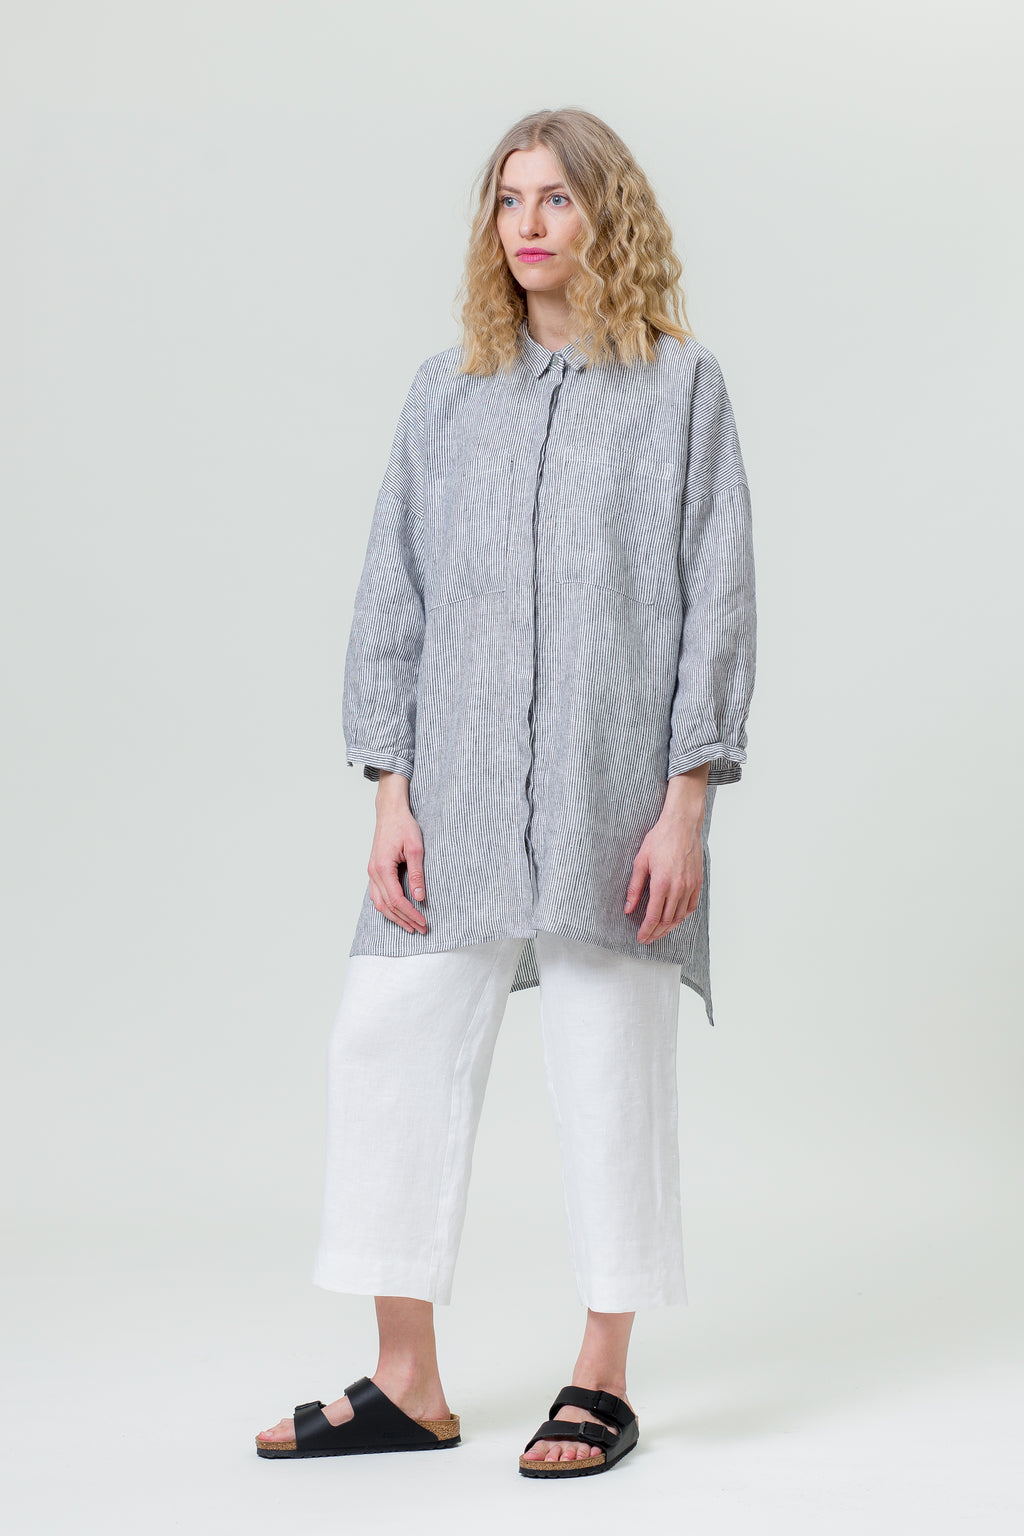 Linen Shirt VANDA white and blue stripes